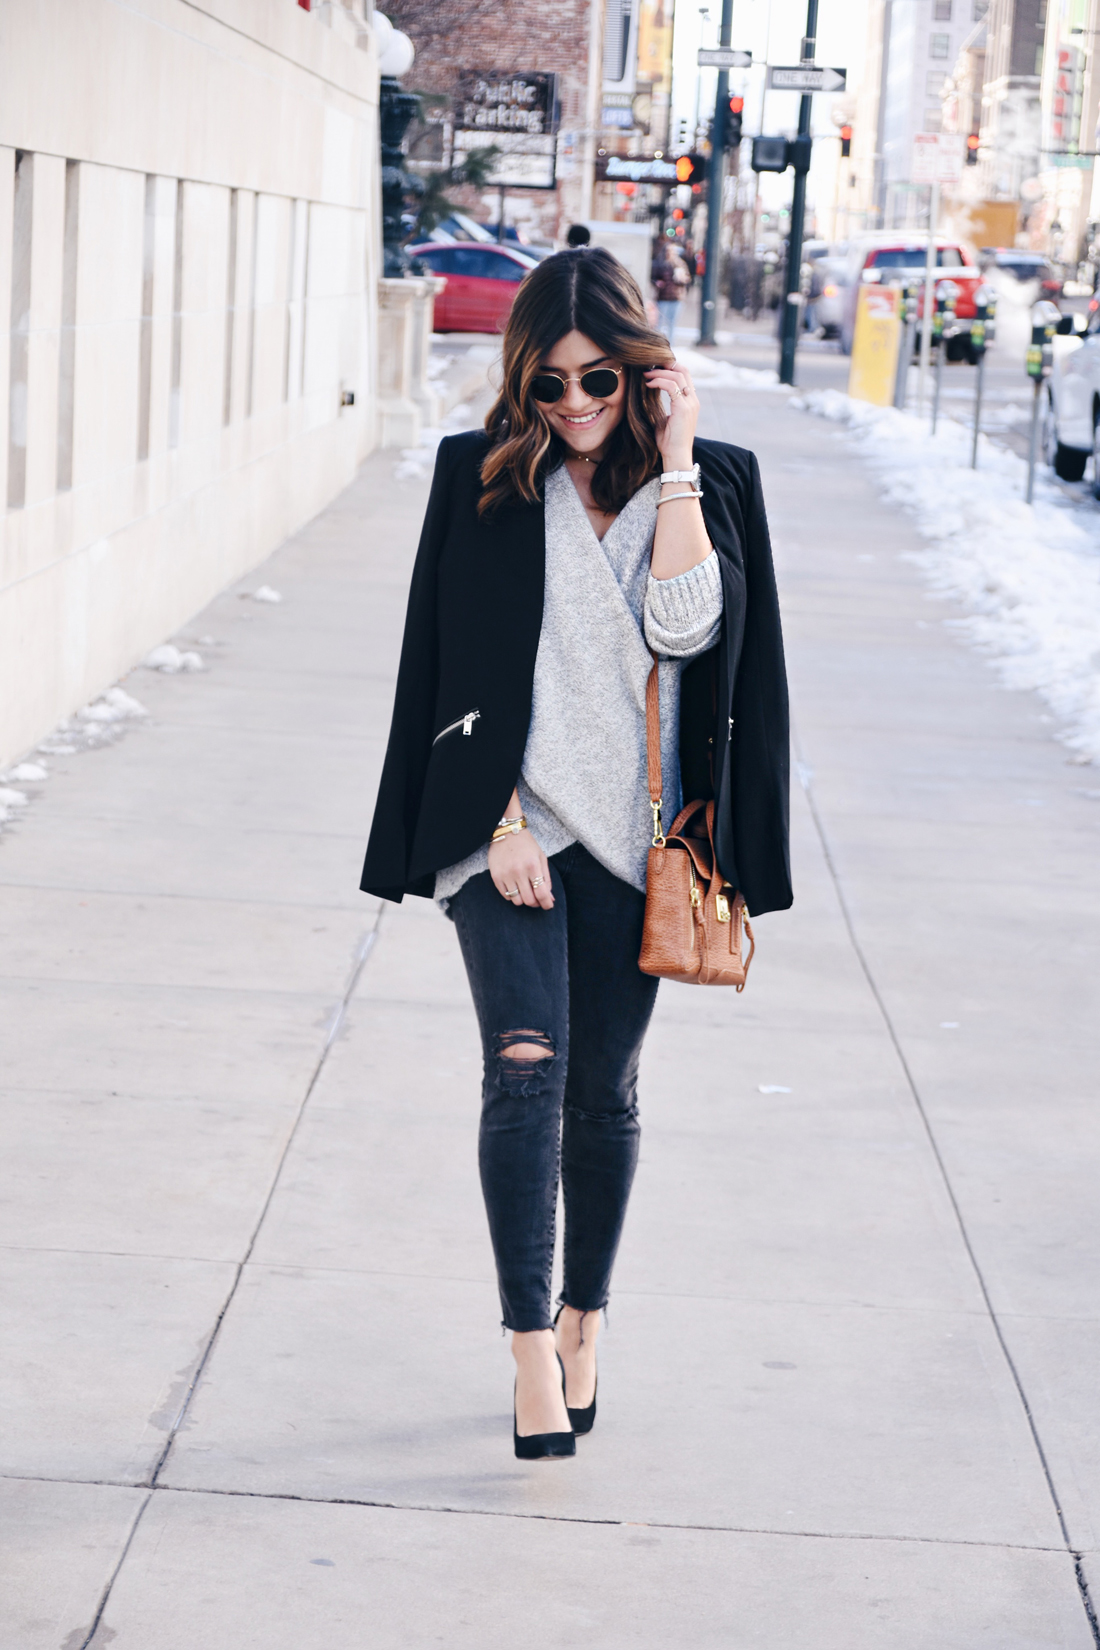 Carolina Hellal of Chic Talk wearing Madewell jeans, Rayban Sunglasses, 3.1 Phillip Lim bag, Steve Madden pumps, and Chicwish cross front sweater